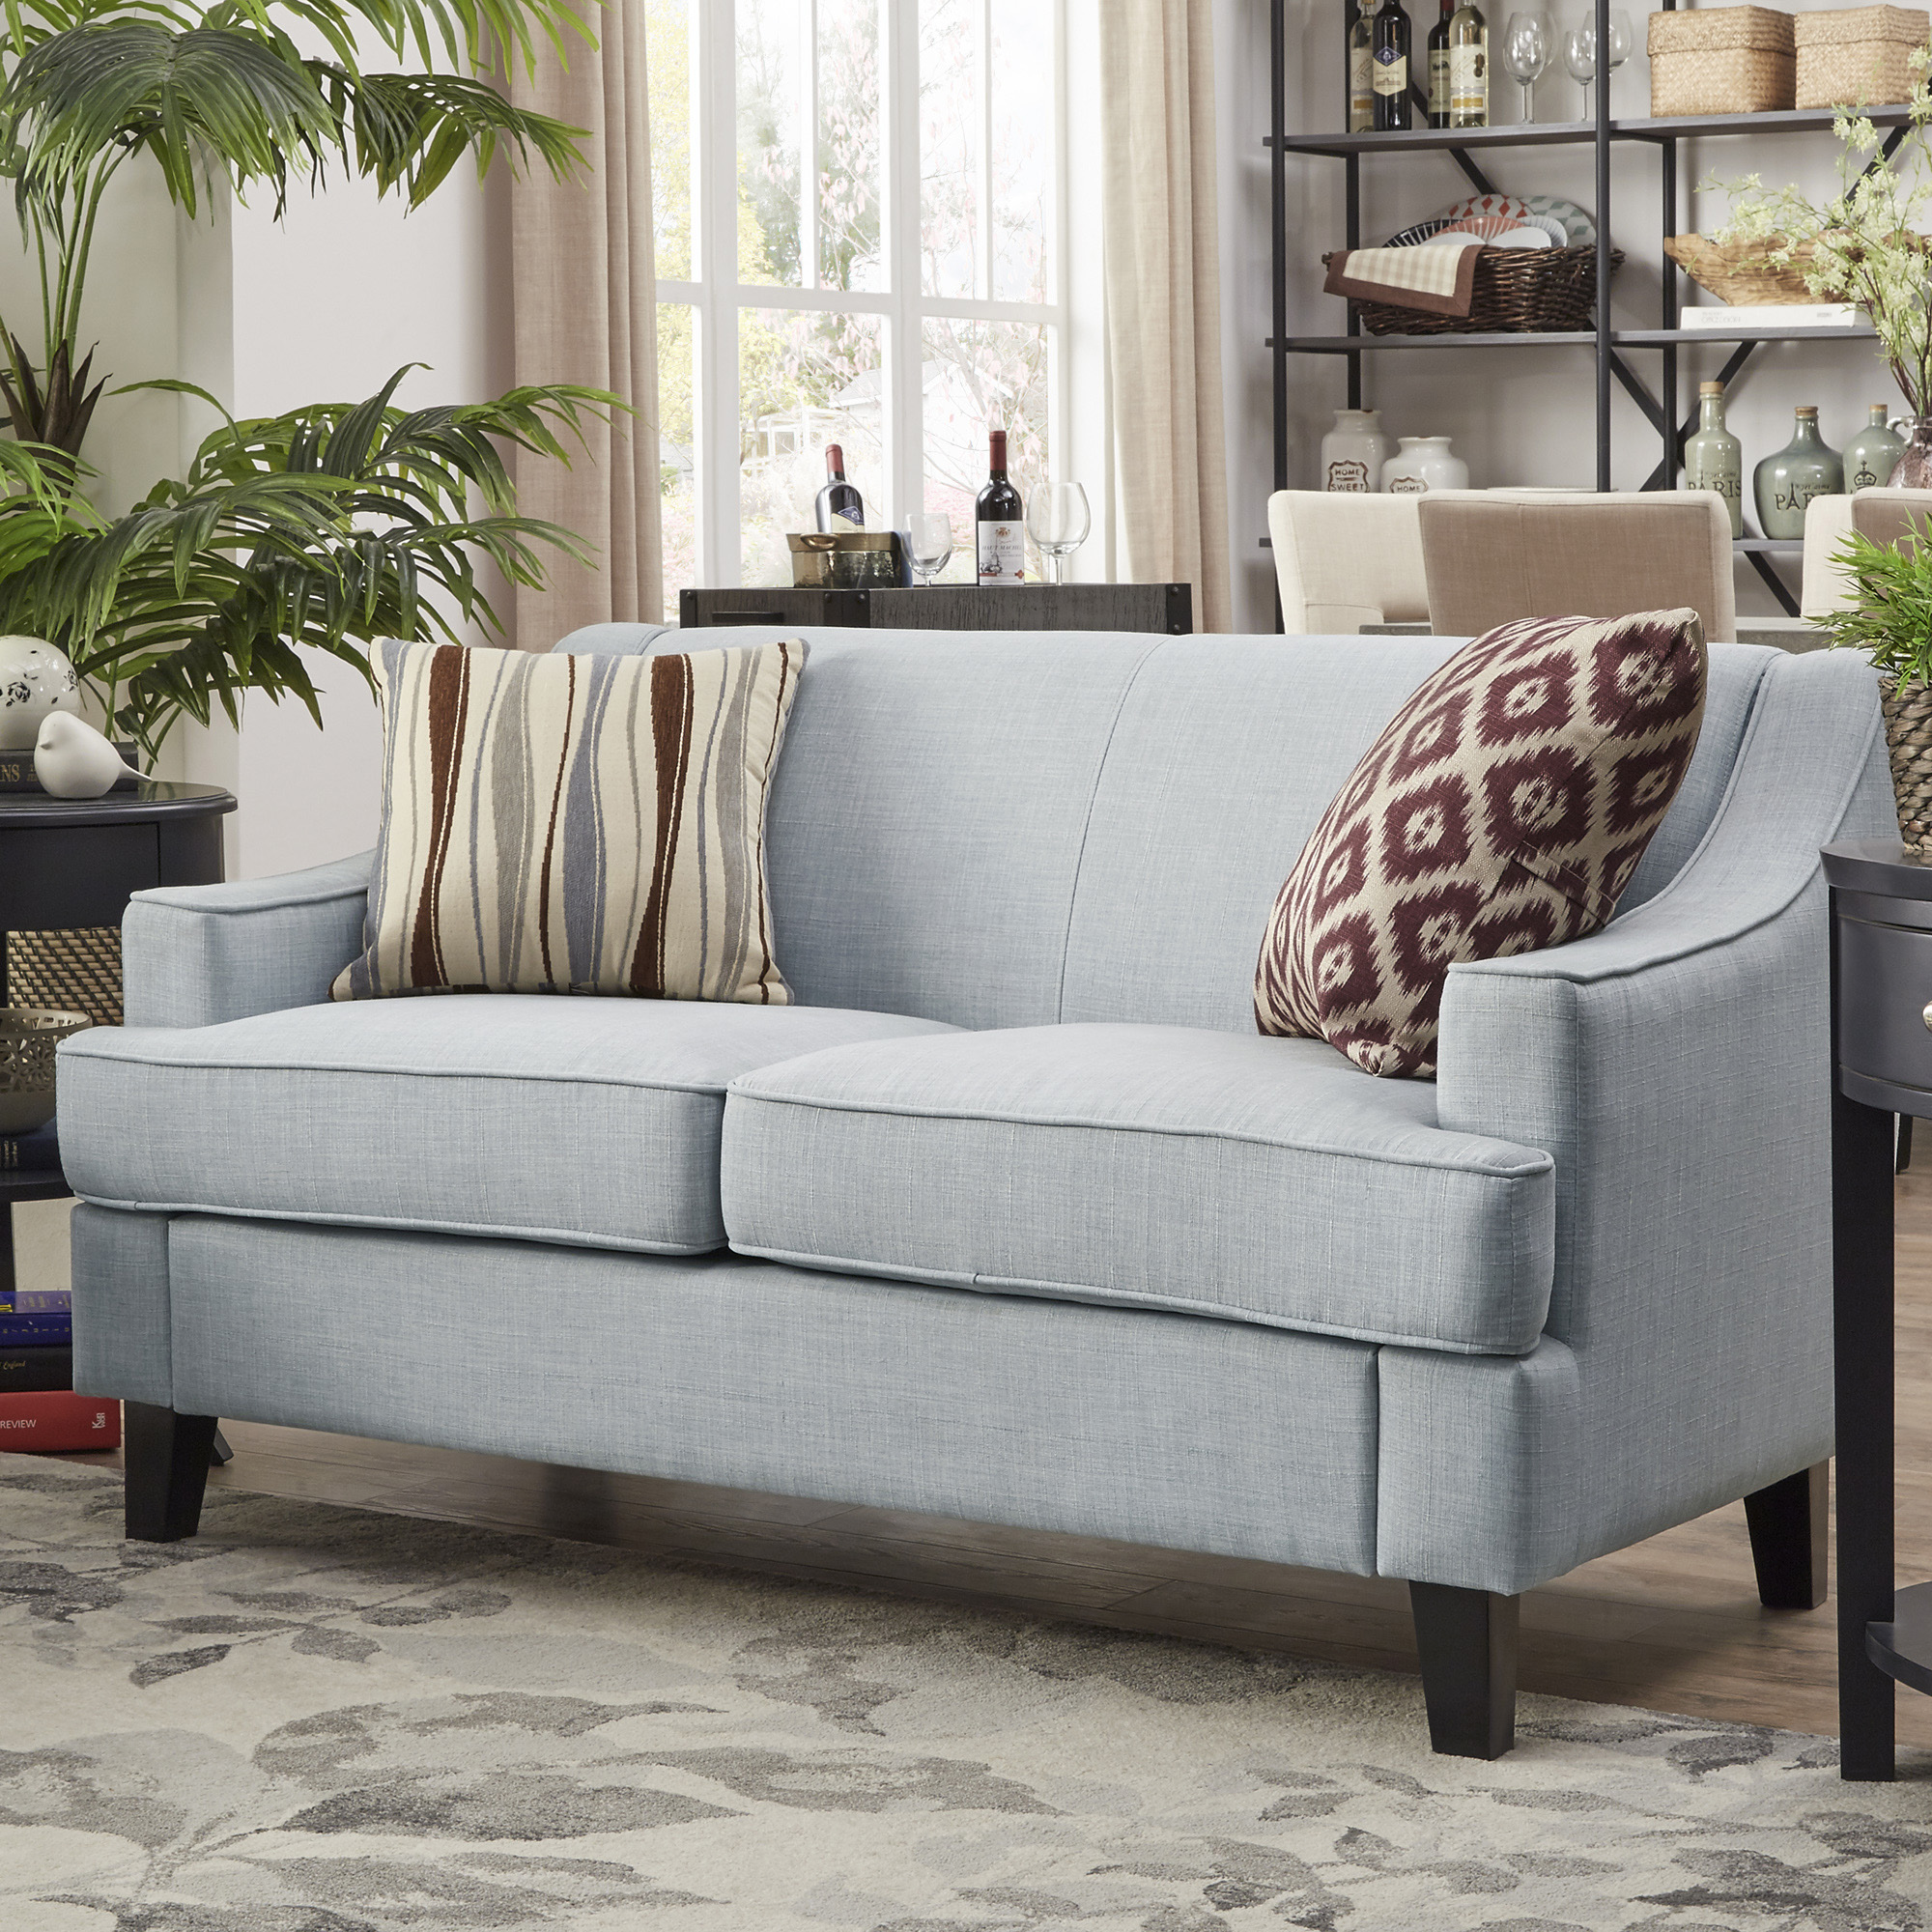 Weston Home Reagan Linen Loveseat With Modern Swooping Arms